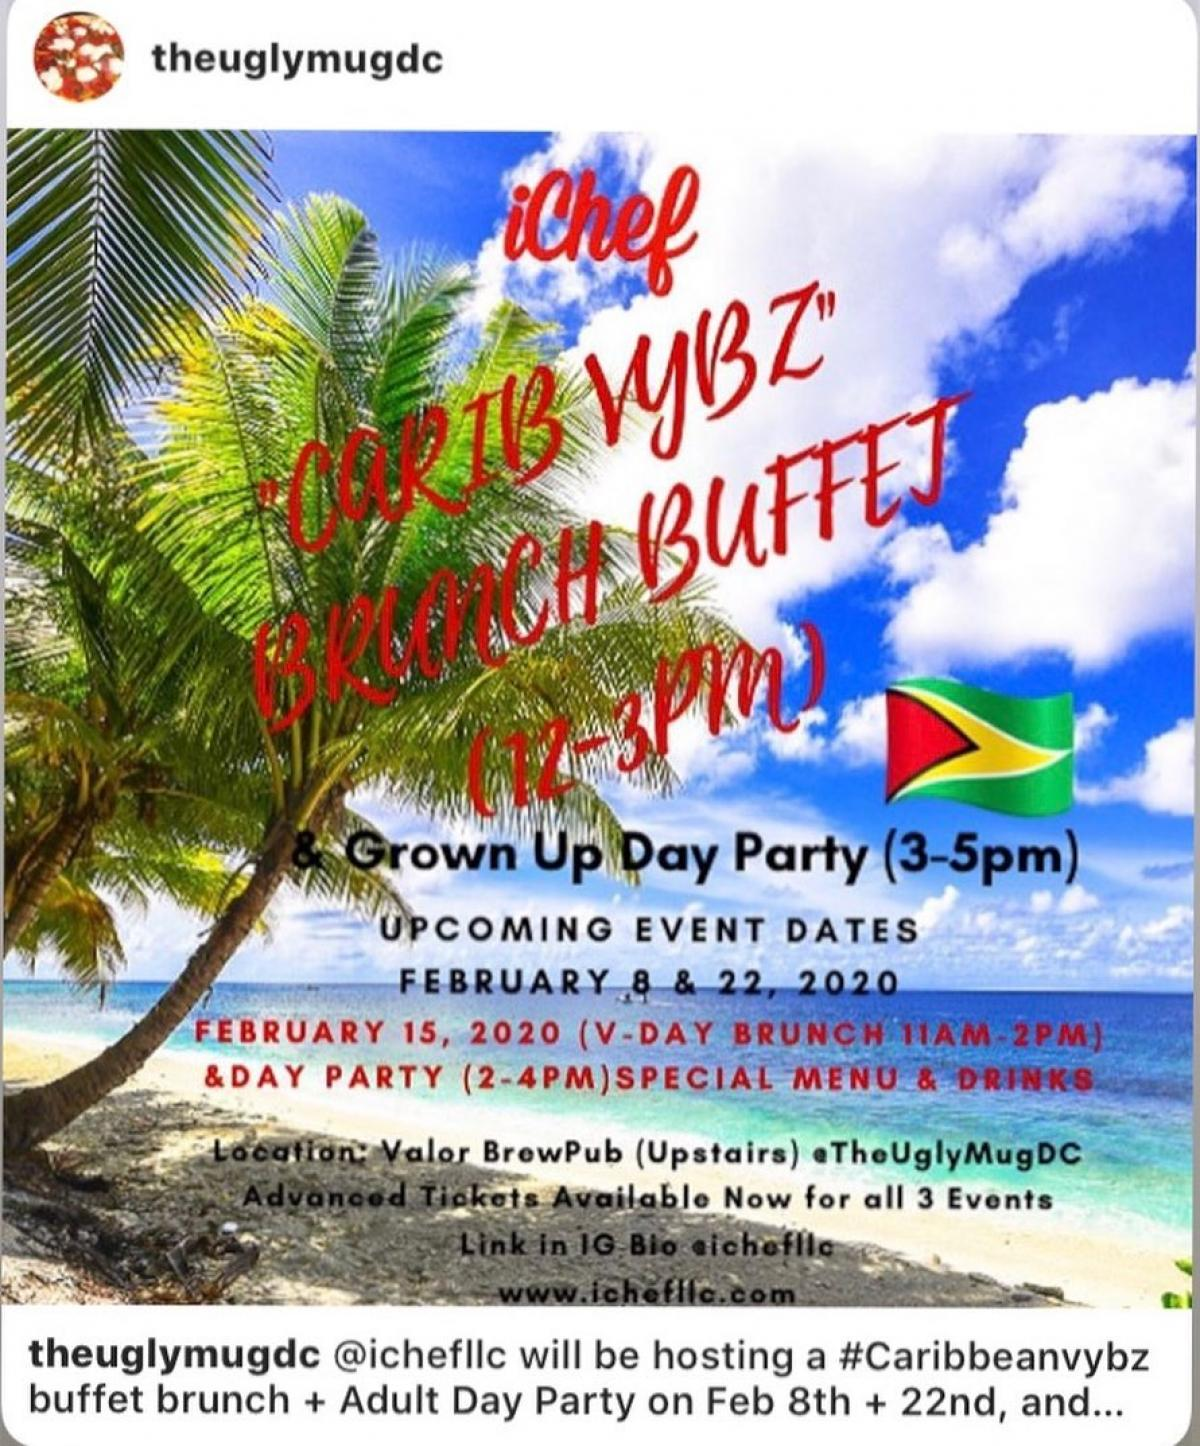 Carib Vybz Brunch Buffet and Grown-Up Day Party flyer or graphic.